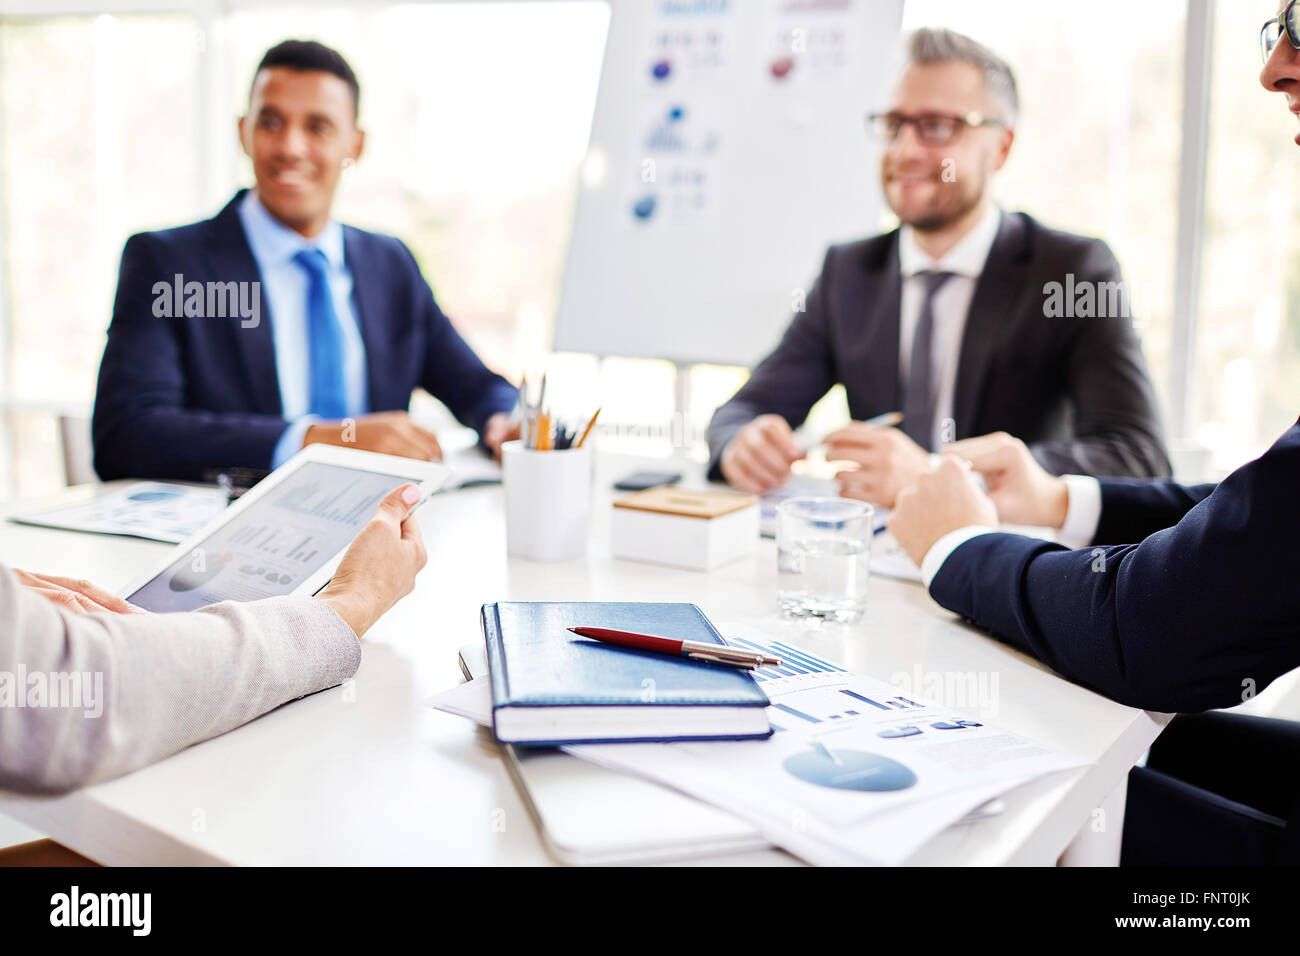 Business people planning work together at the table - Stock Image